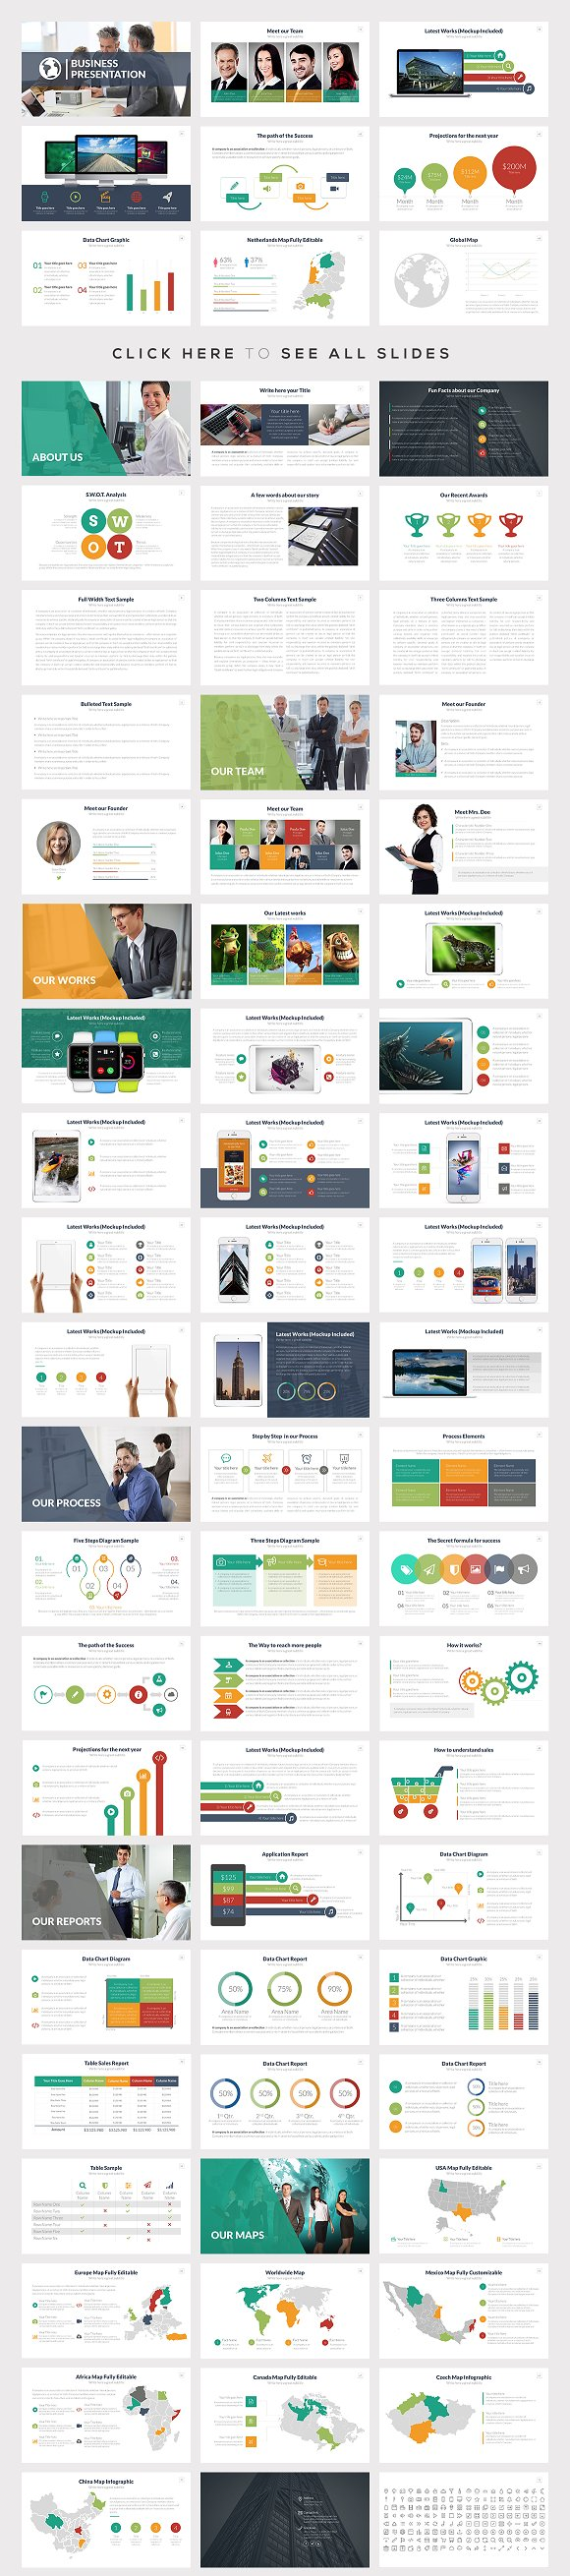 Best powerpoint templates bundle presentation templates best powerpoint templates bundle presentation templates creative market toneelgroepblik